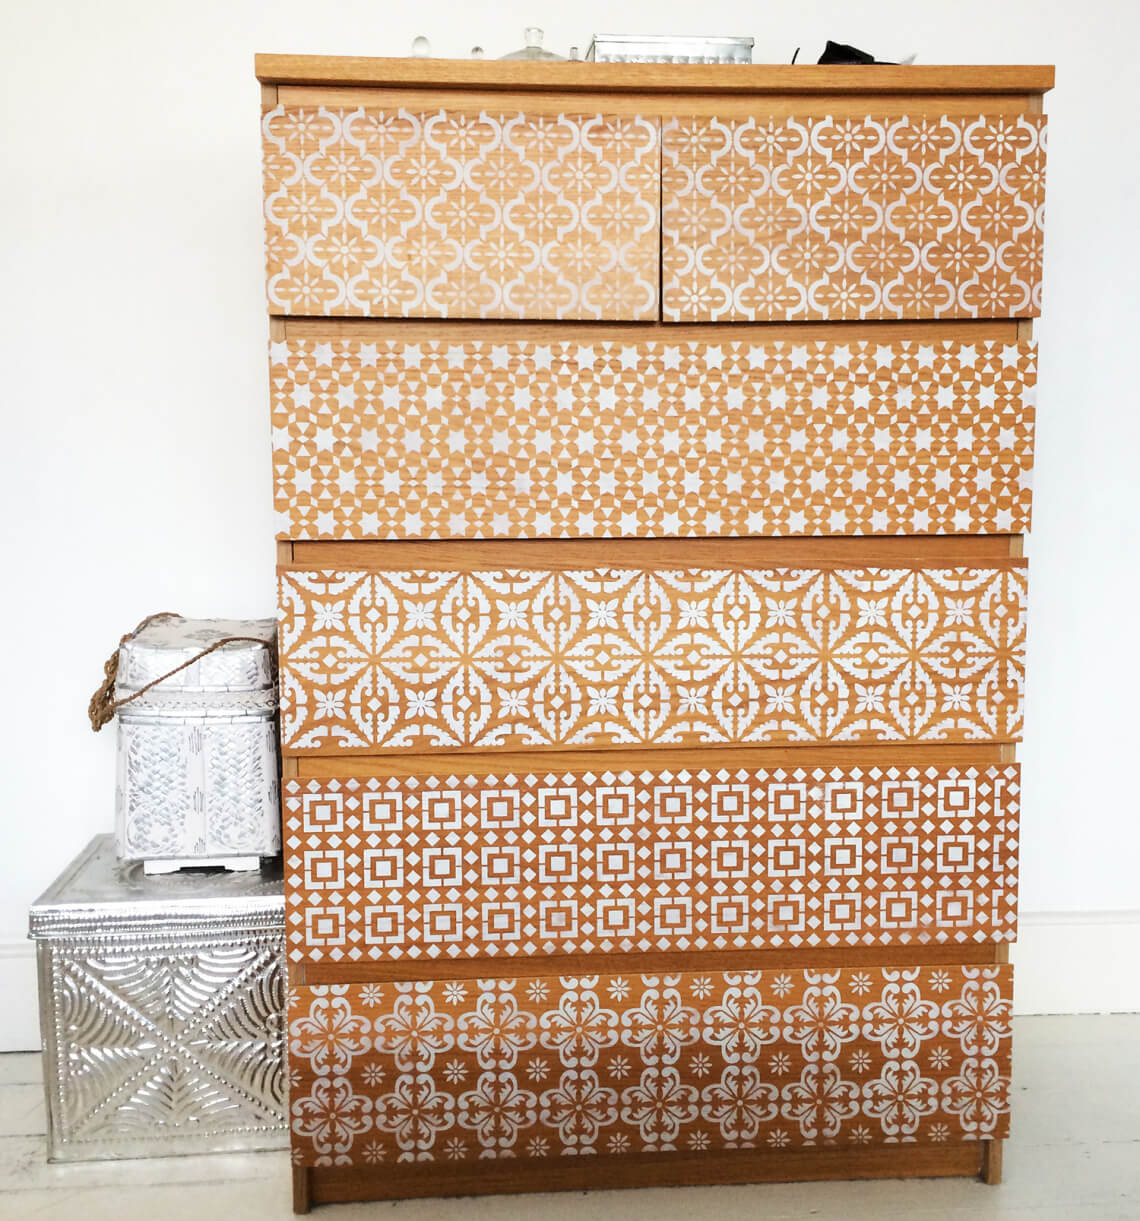 Natural Wood with White Intricate Stenciled Storage Closet